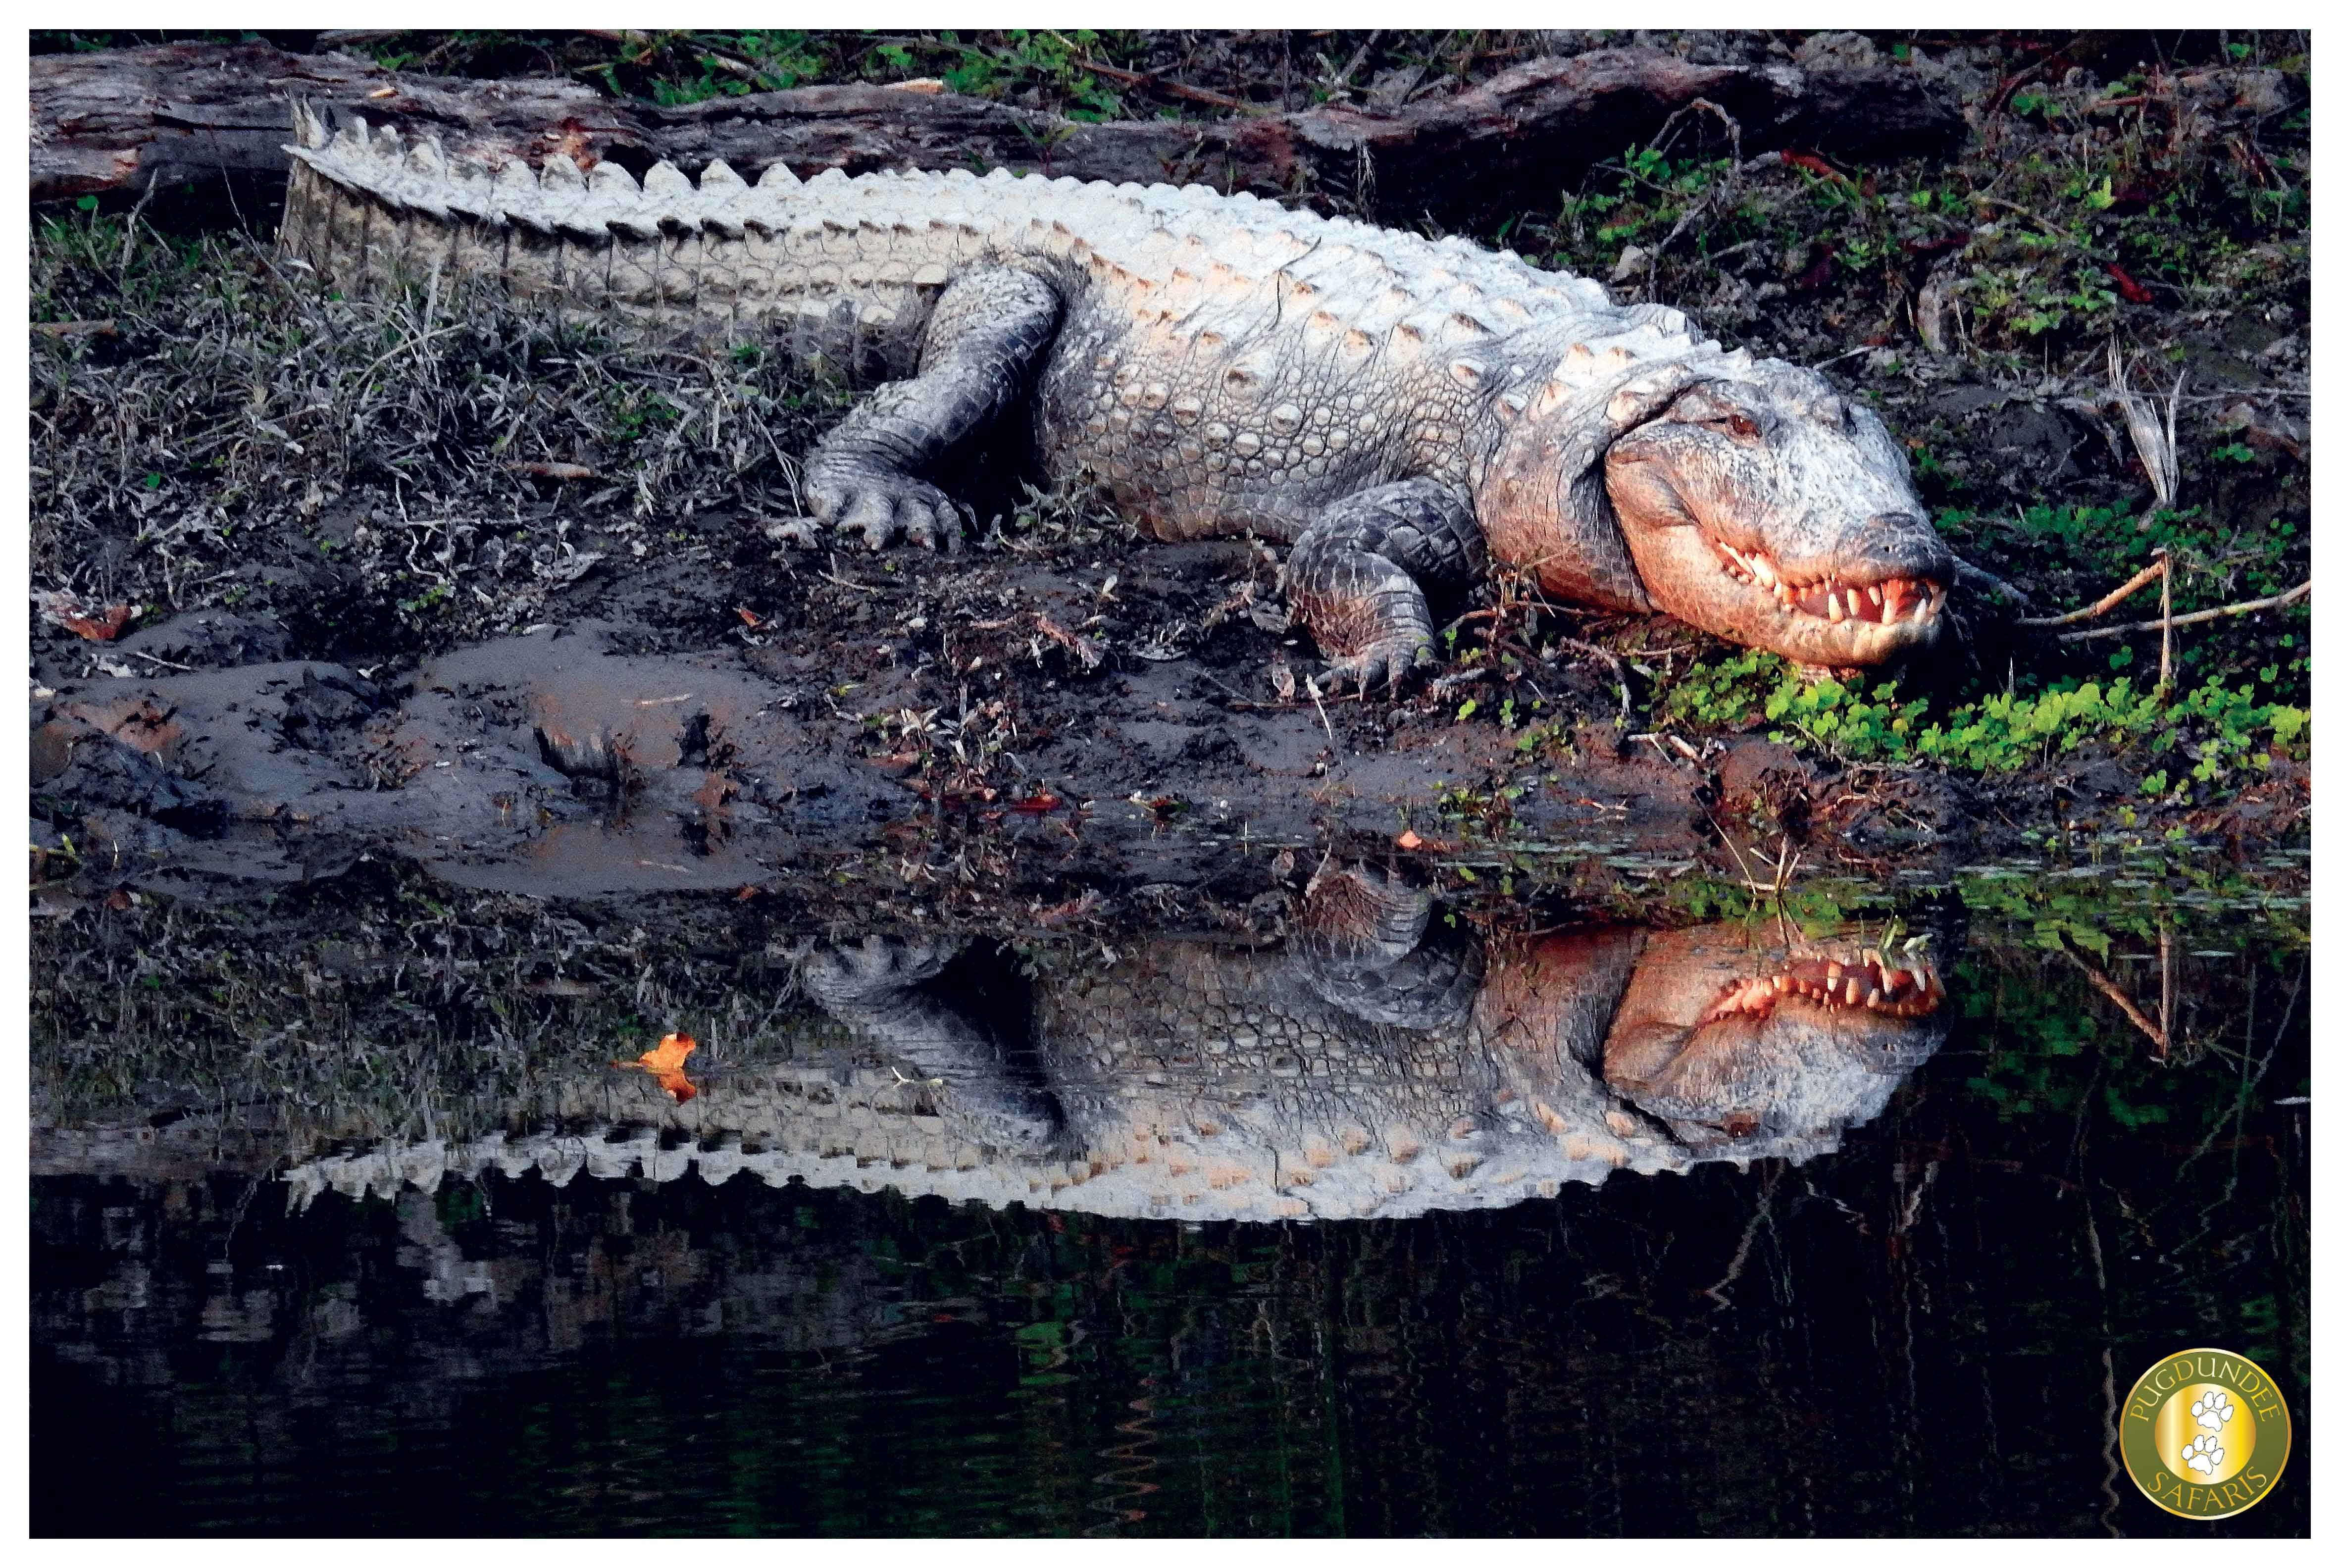 The Jaw rule difference between alligator and crocodile Marsh Muggers (the river monster) belongs to the Crocodylidae family and are different from Alligators. #Crocodiles has the broadest snout among all the species from Crocodylidae family lending them a more alligator like appearance. They have a 'V' shape nose and the size of the upper and jaw is almost the same size and teeth from both upper and lower jaw visibly overlap when crocodiles close their mouth.